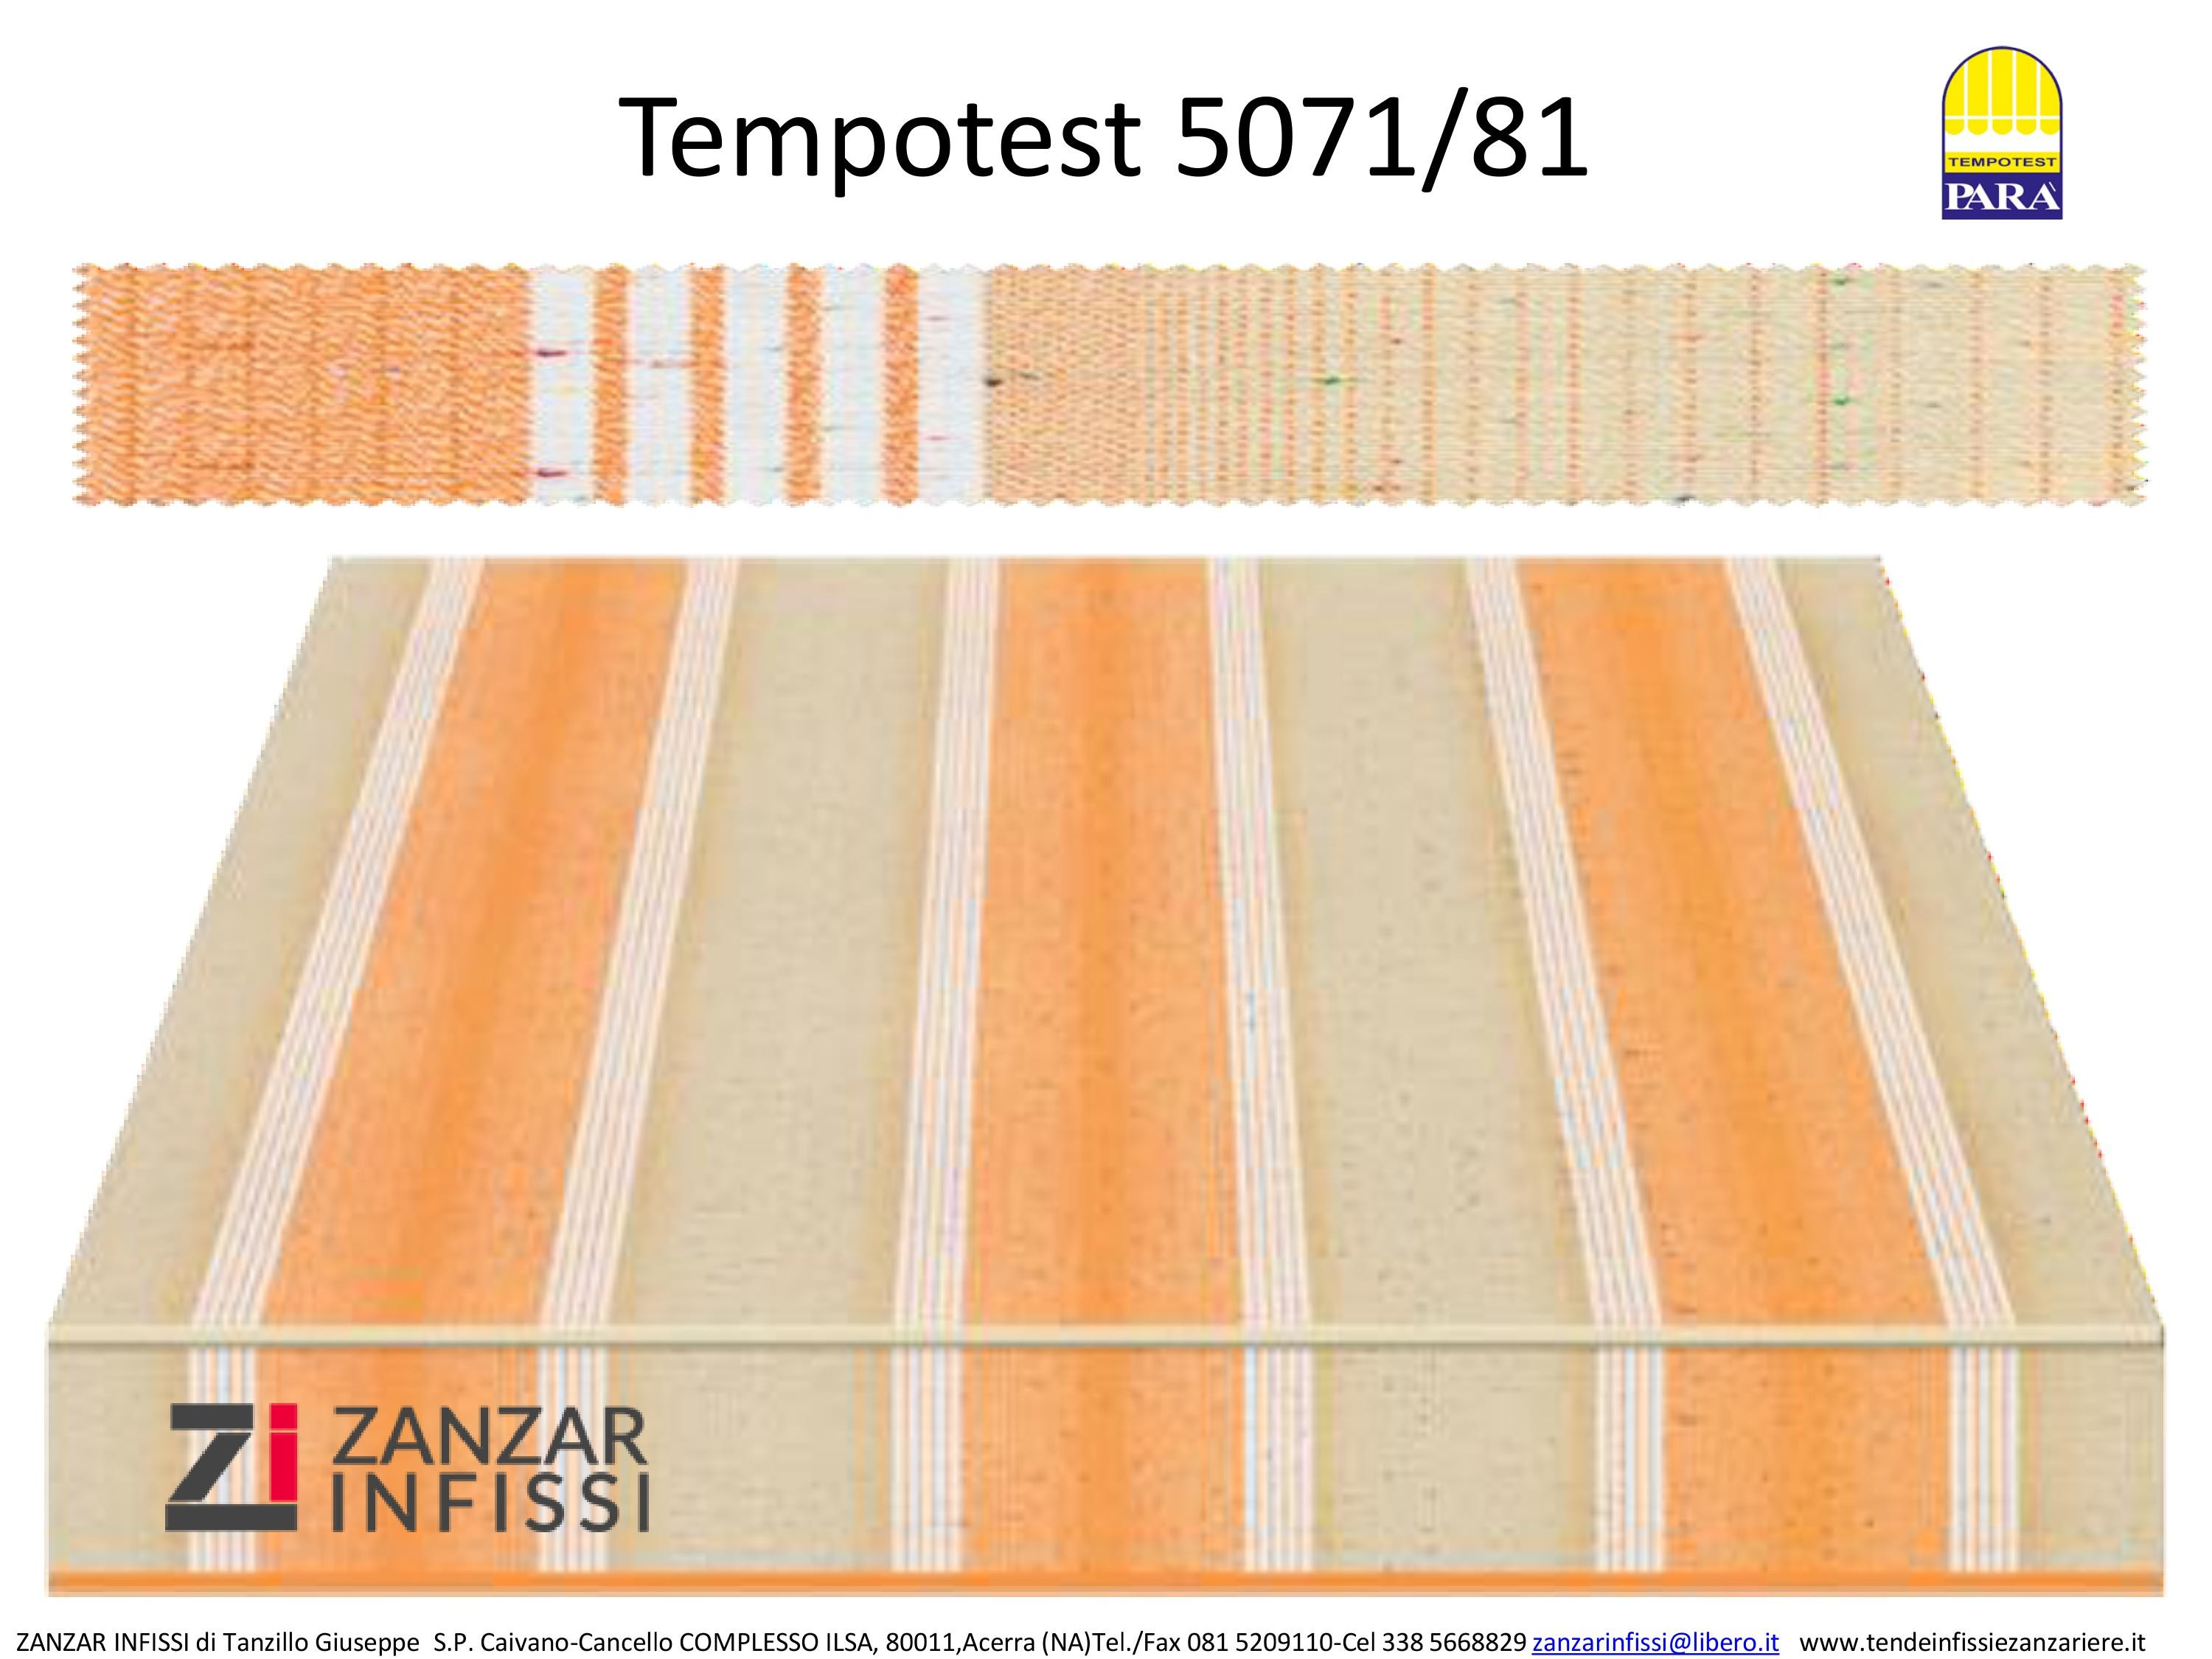 Tempotest 5071/81